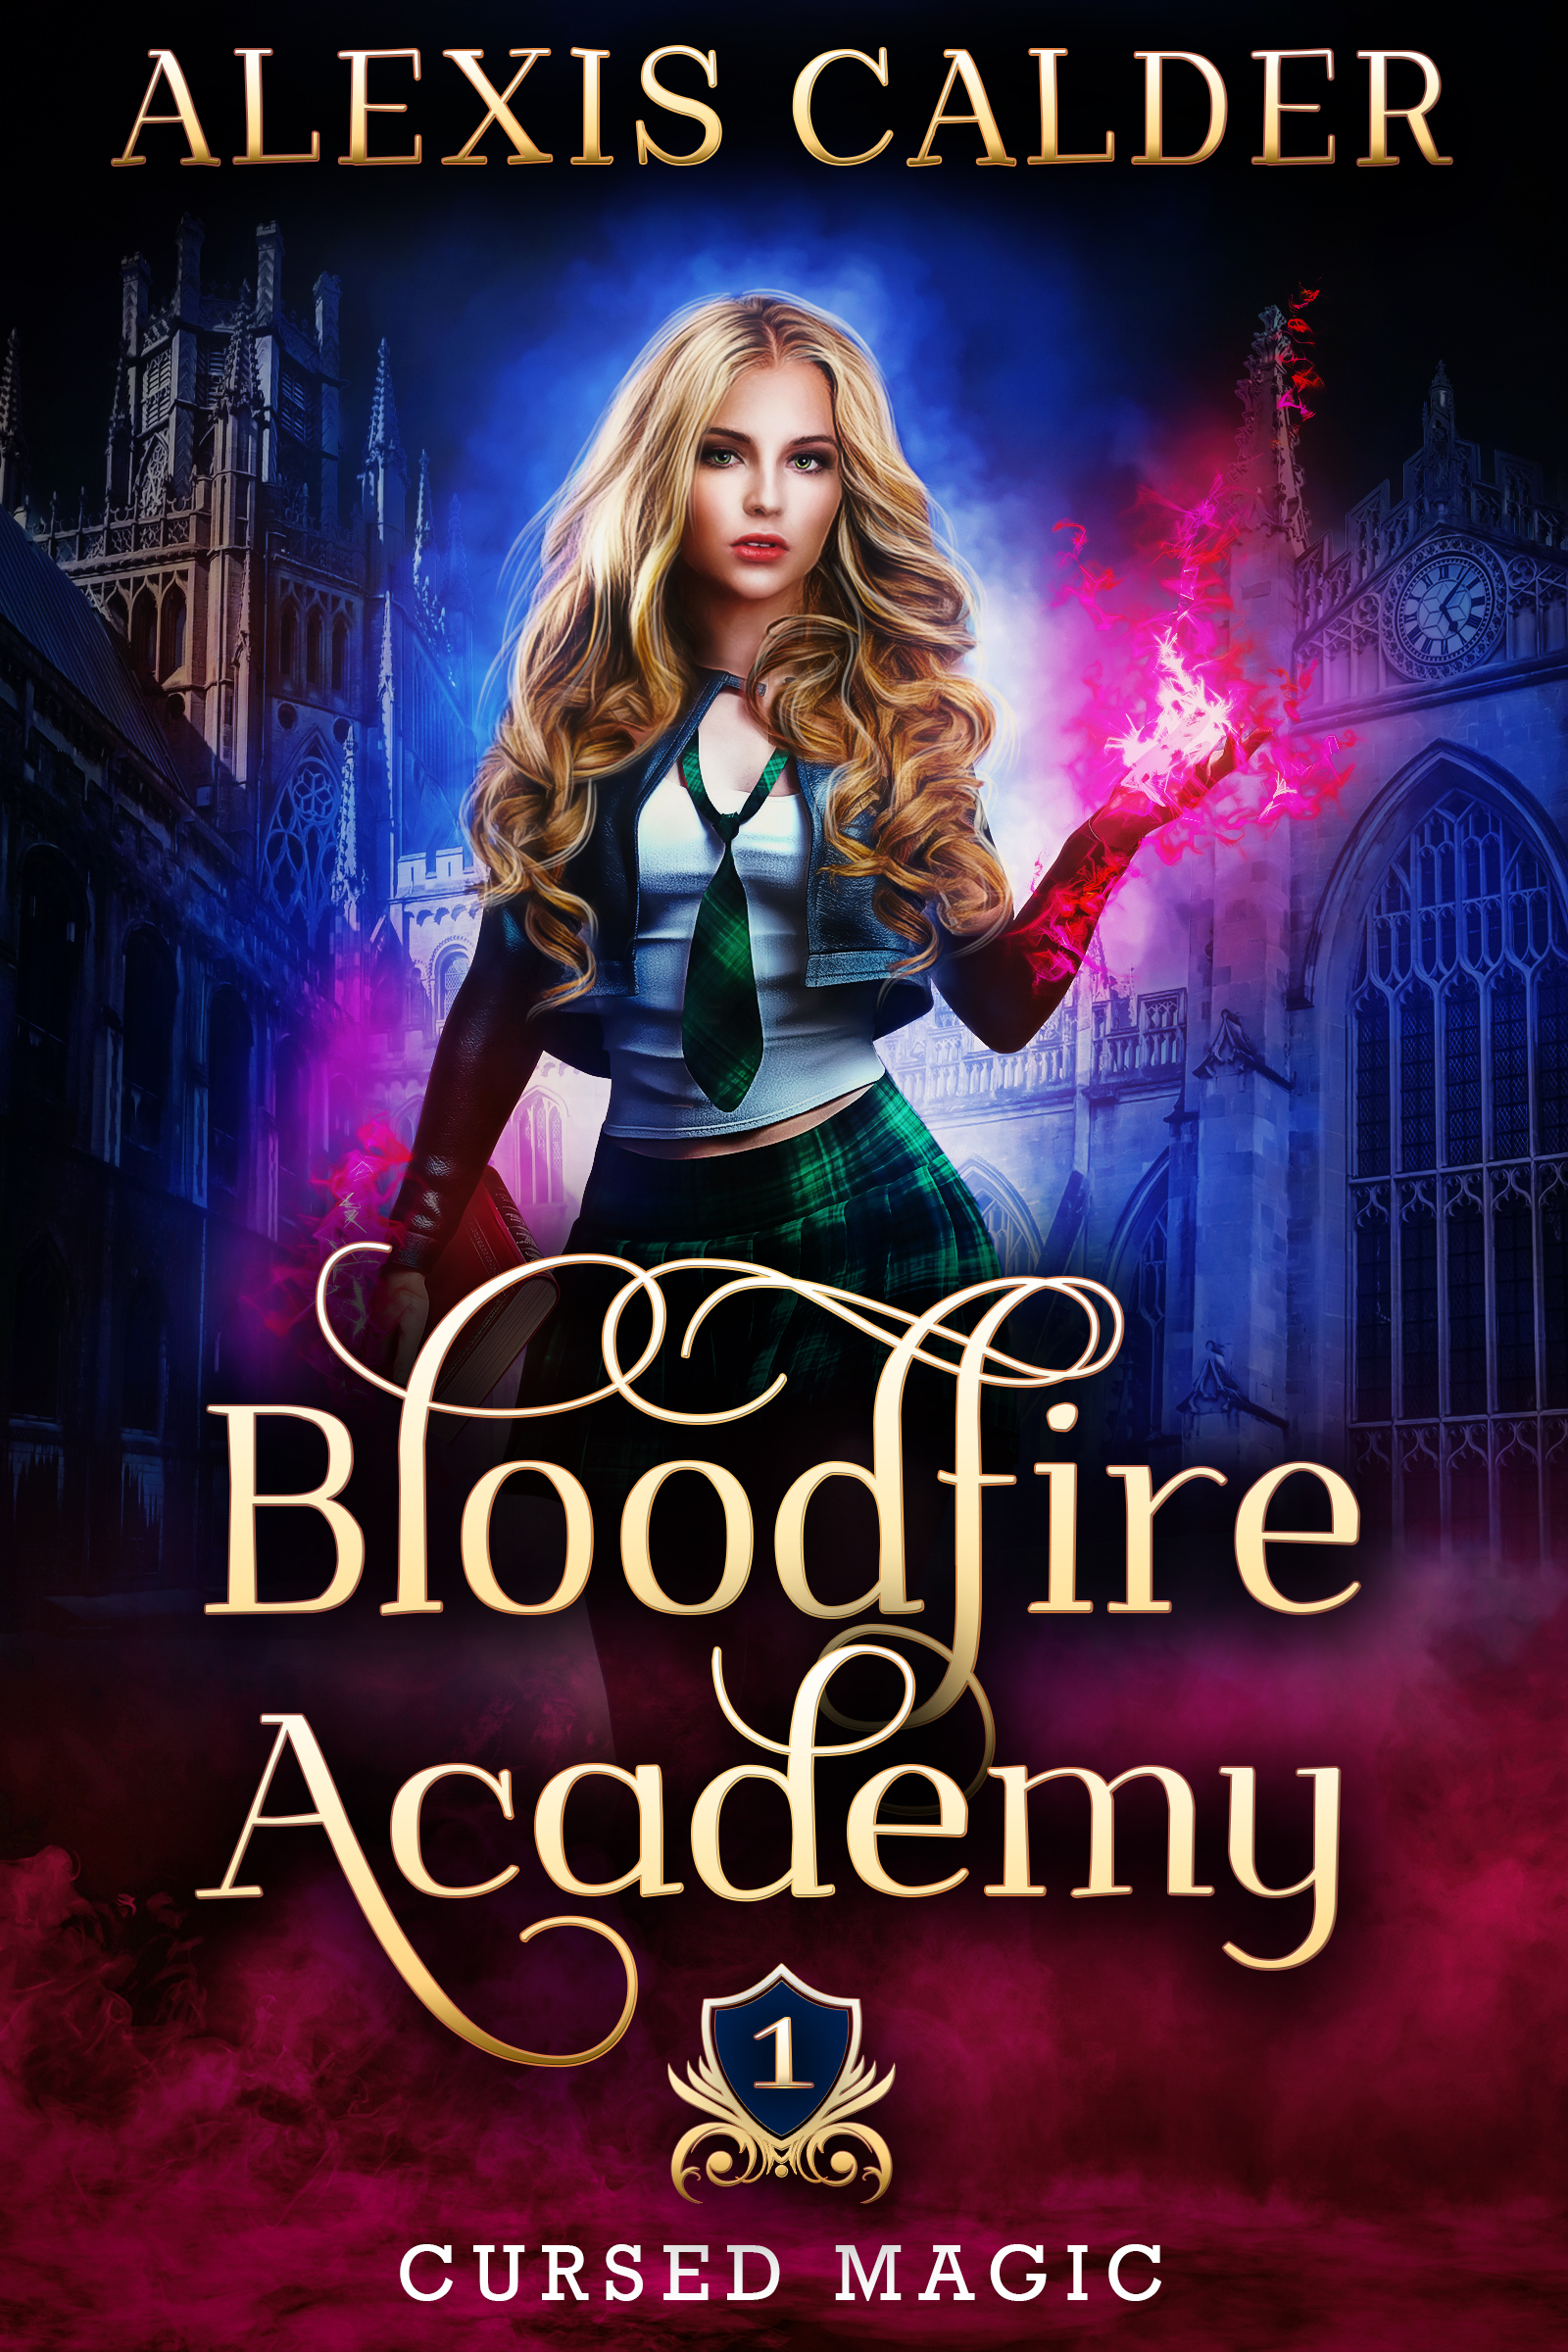 [PDF] [EPUB] Bloodfire Academy (Cursed Magic, #1) Download by Alexis Calder